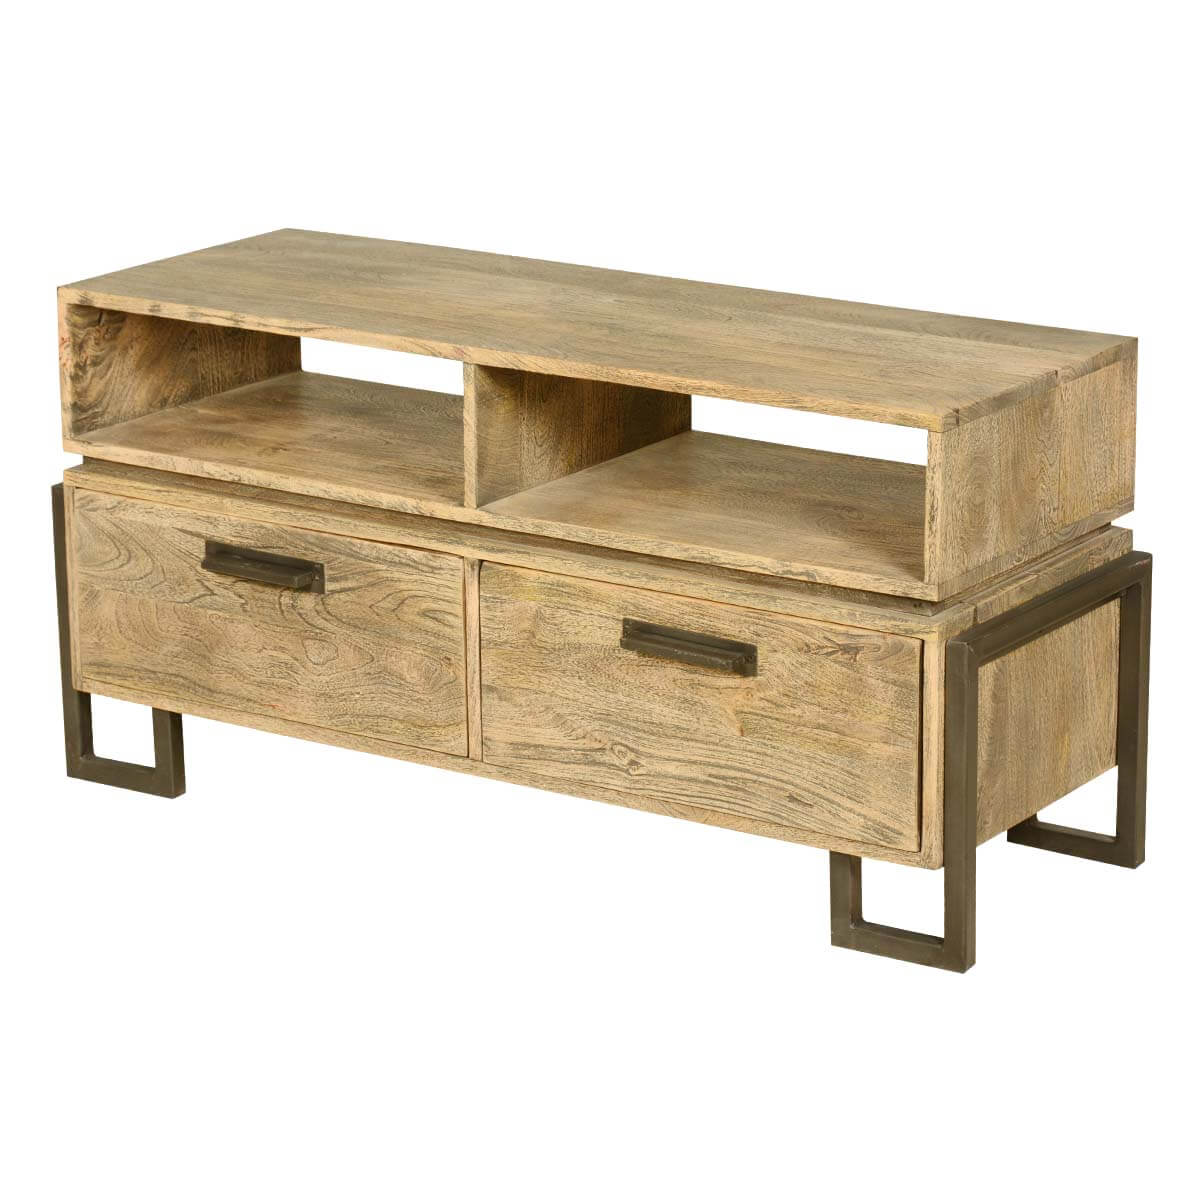 Modern rustic industrial fusion solid wood media console tv stand